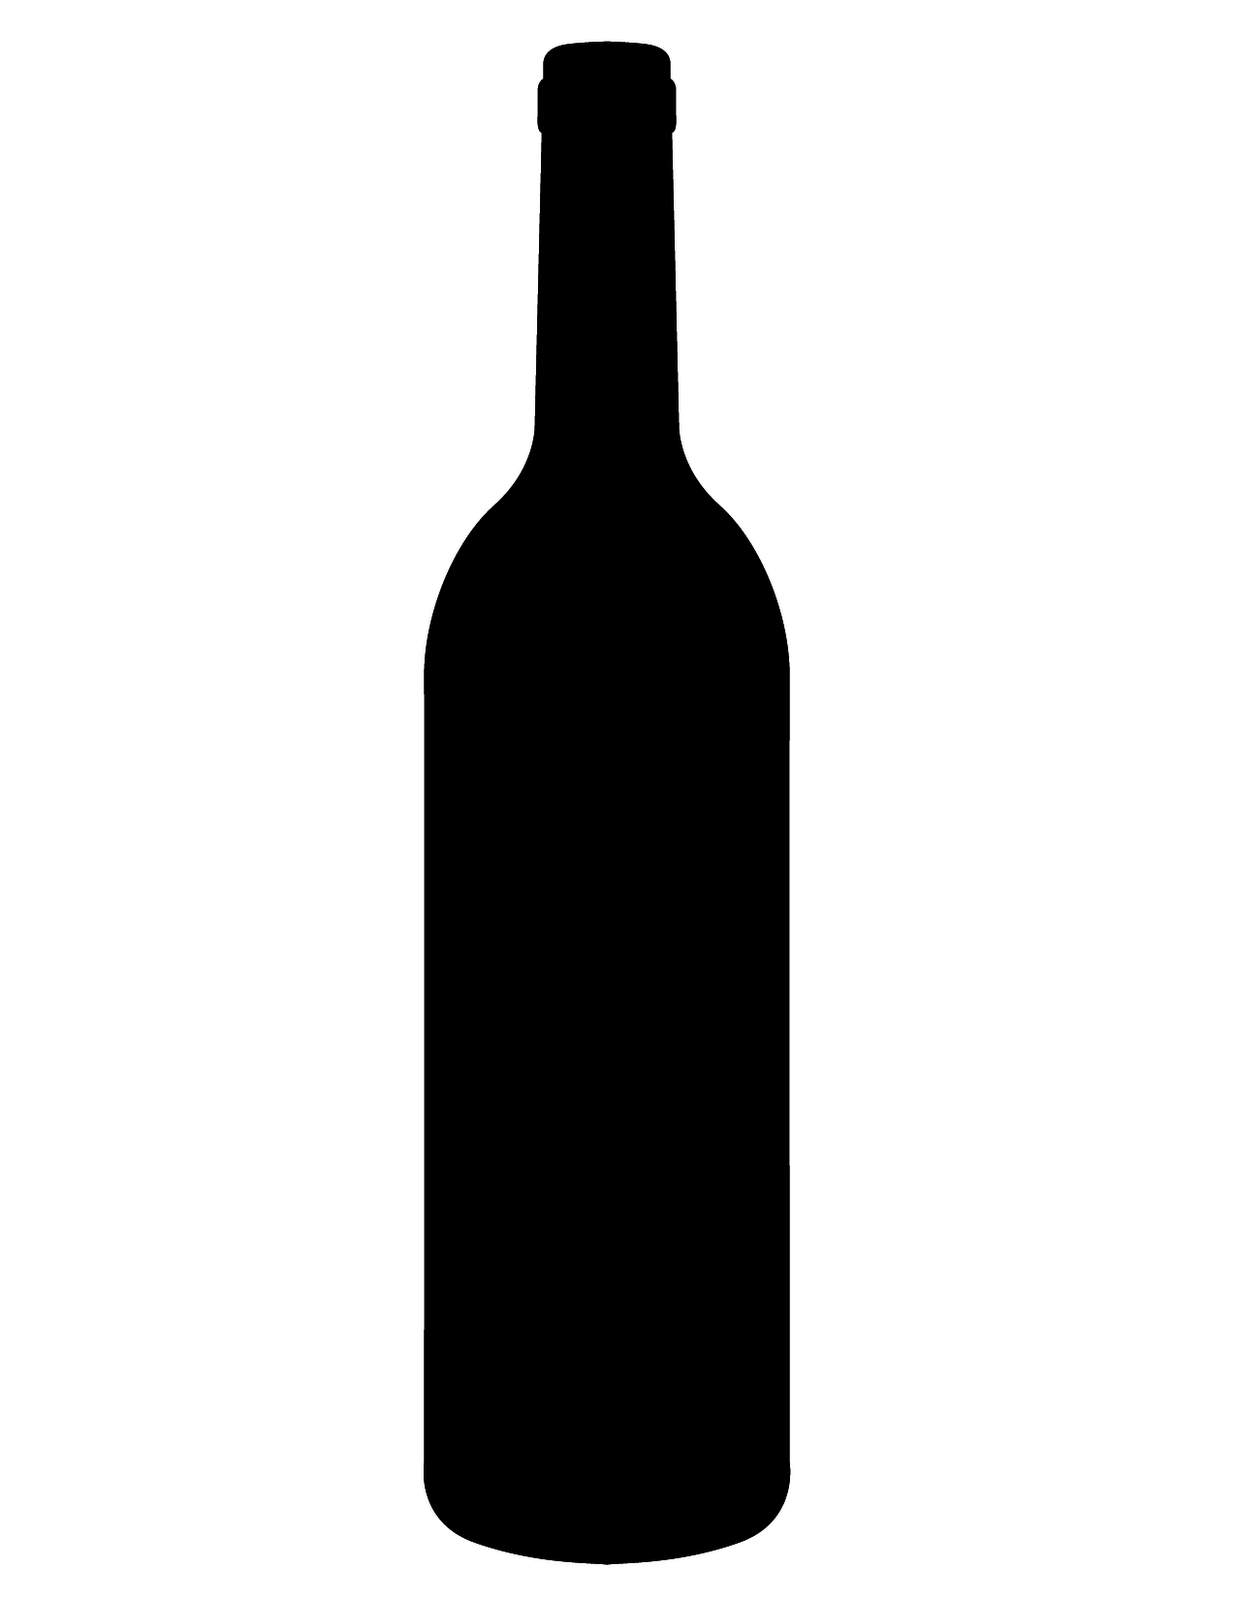 1236x1600 Wine Bottle Silhouette This Is The Silhouette Of A Wine Bottle